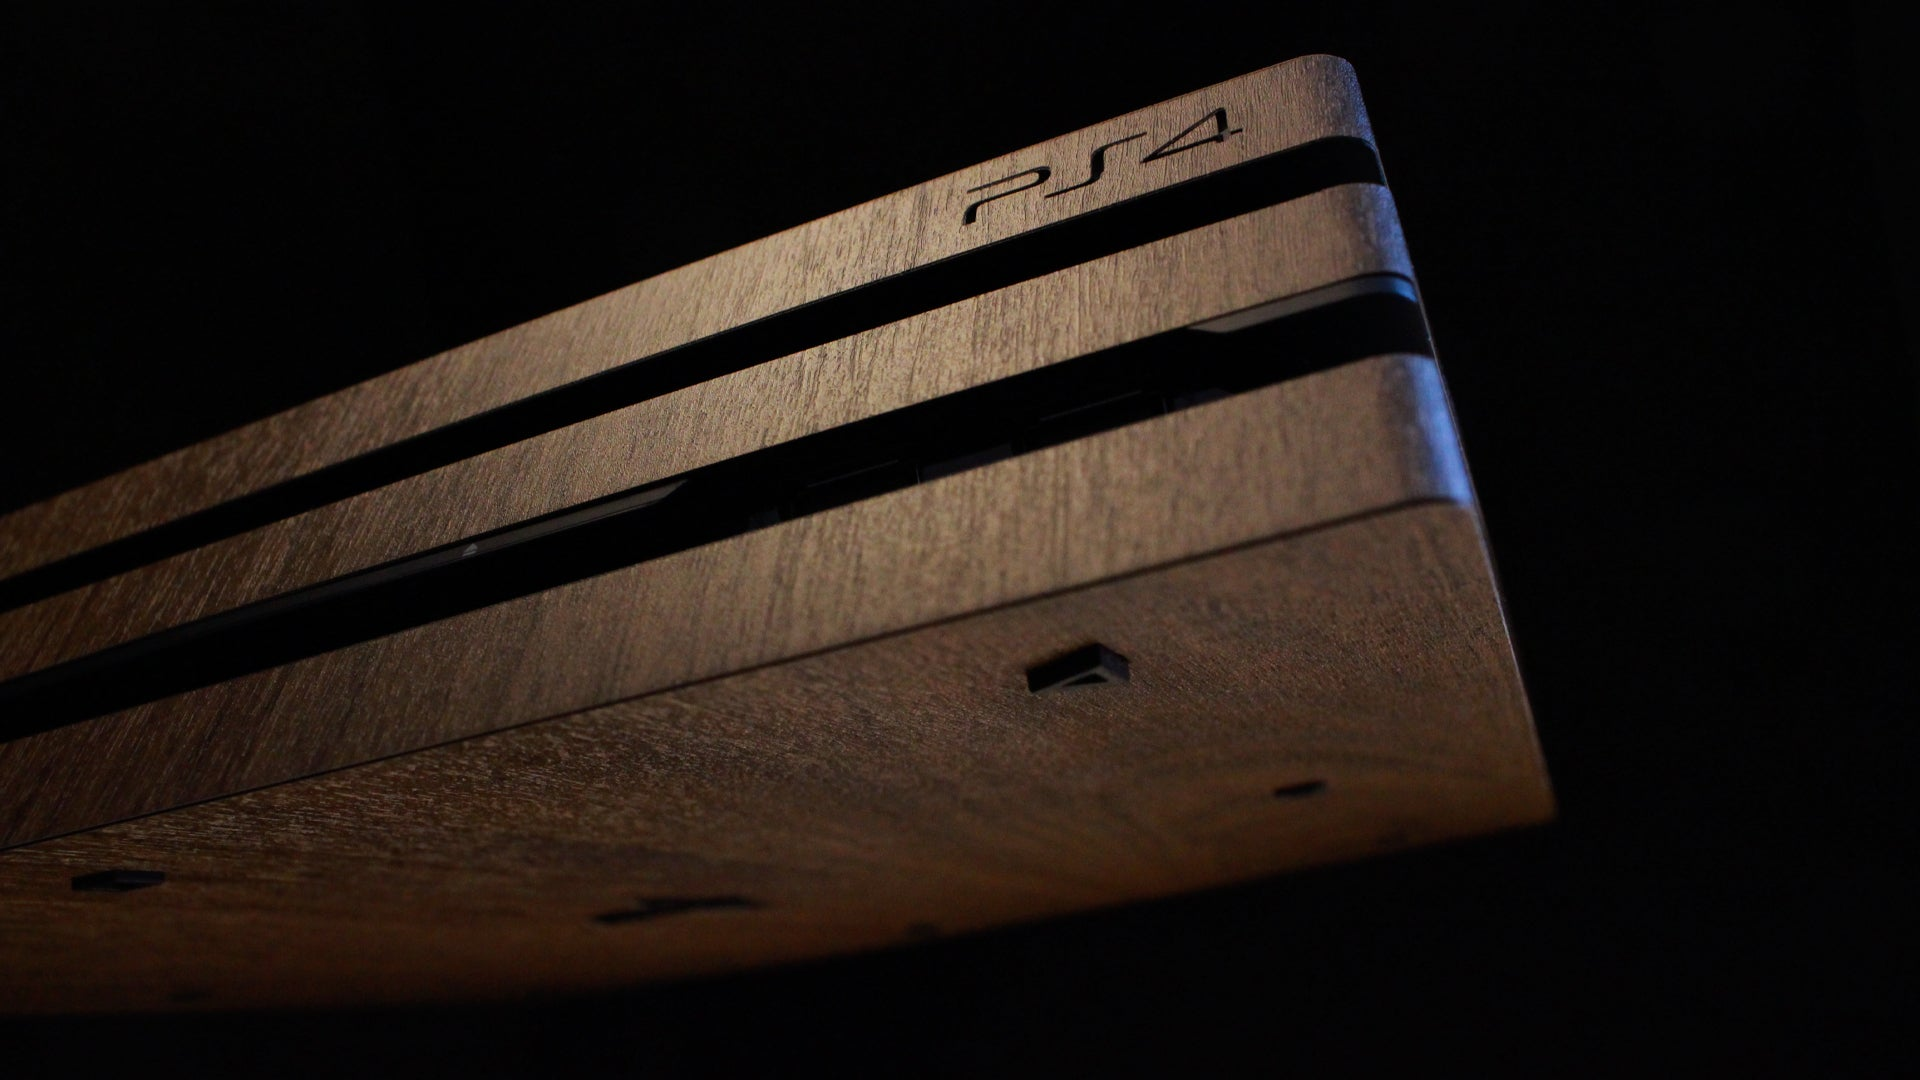 PS4 Pro Dark Oak Wood Skins